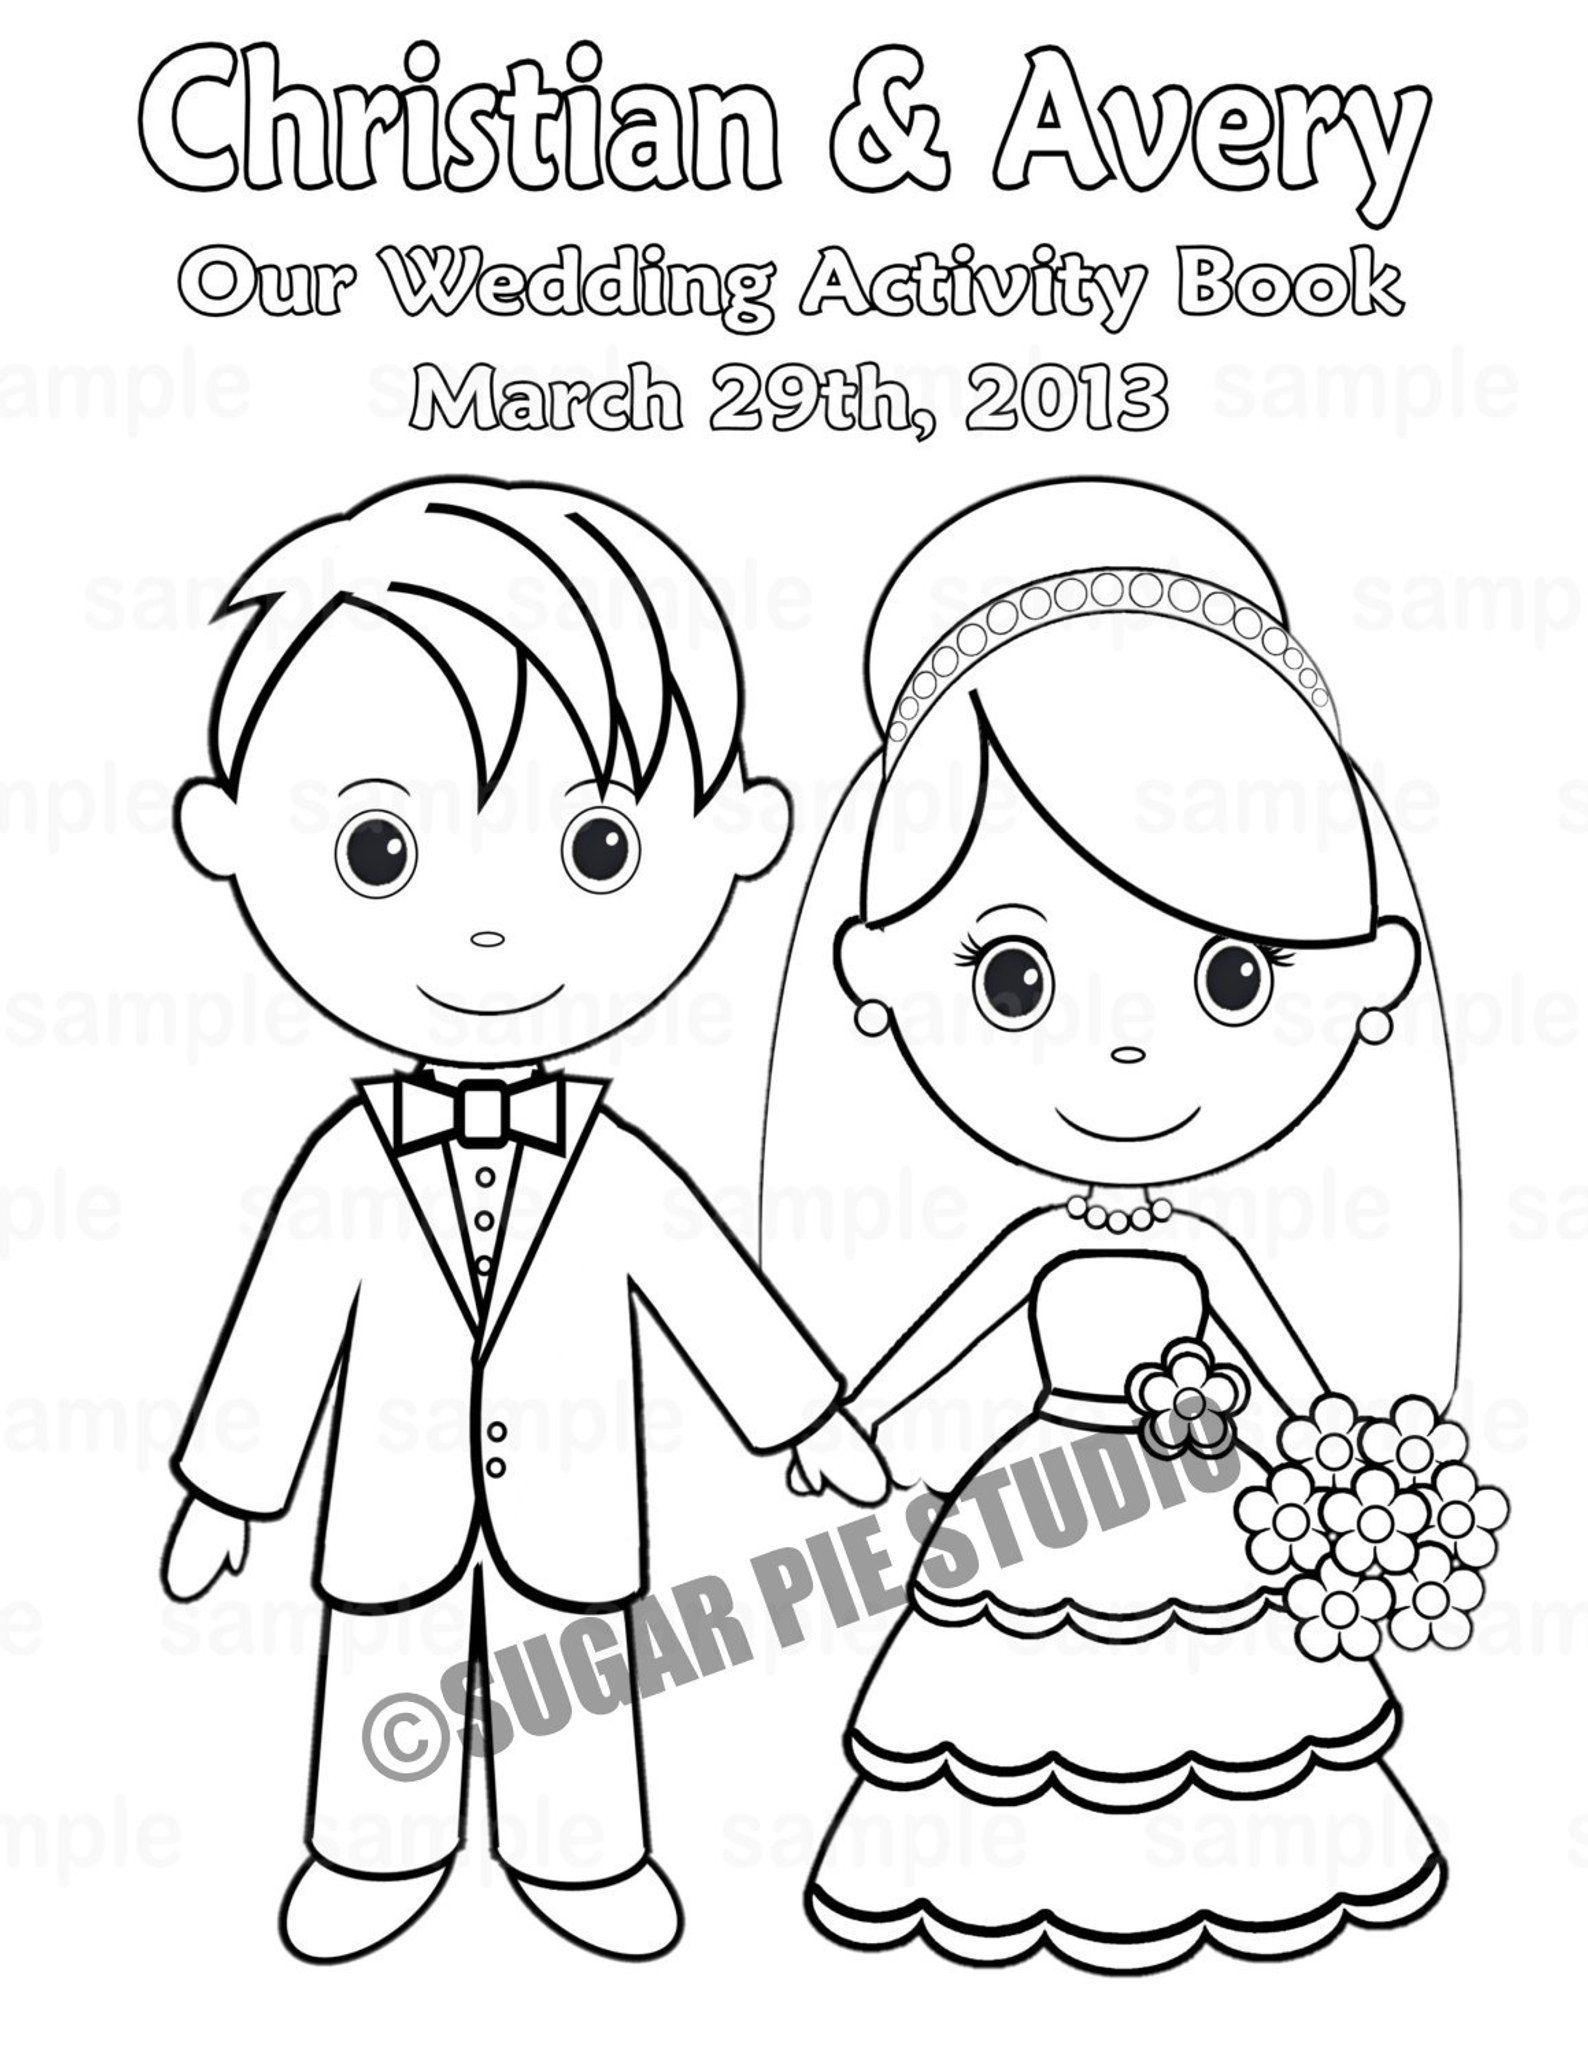 Mini Printable Personalized Wedding Coloring Activity Book Etsy Wedding Coloring Pages Wedding With Kids Book Favors